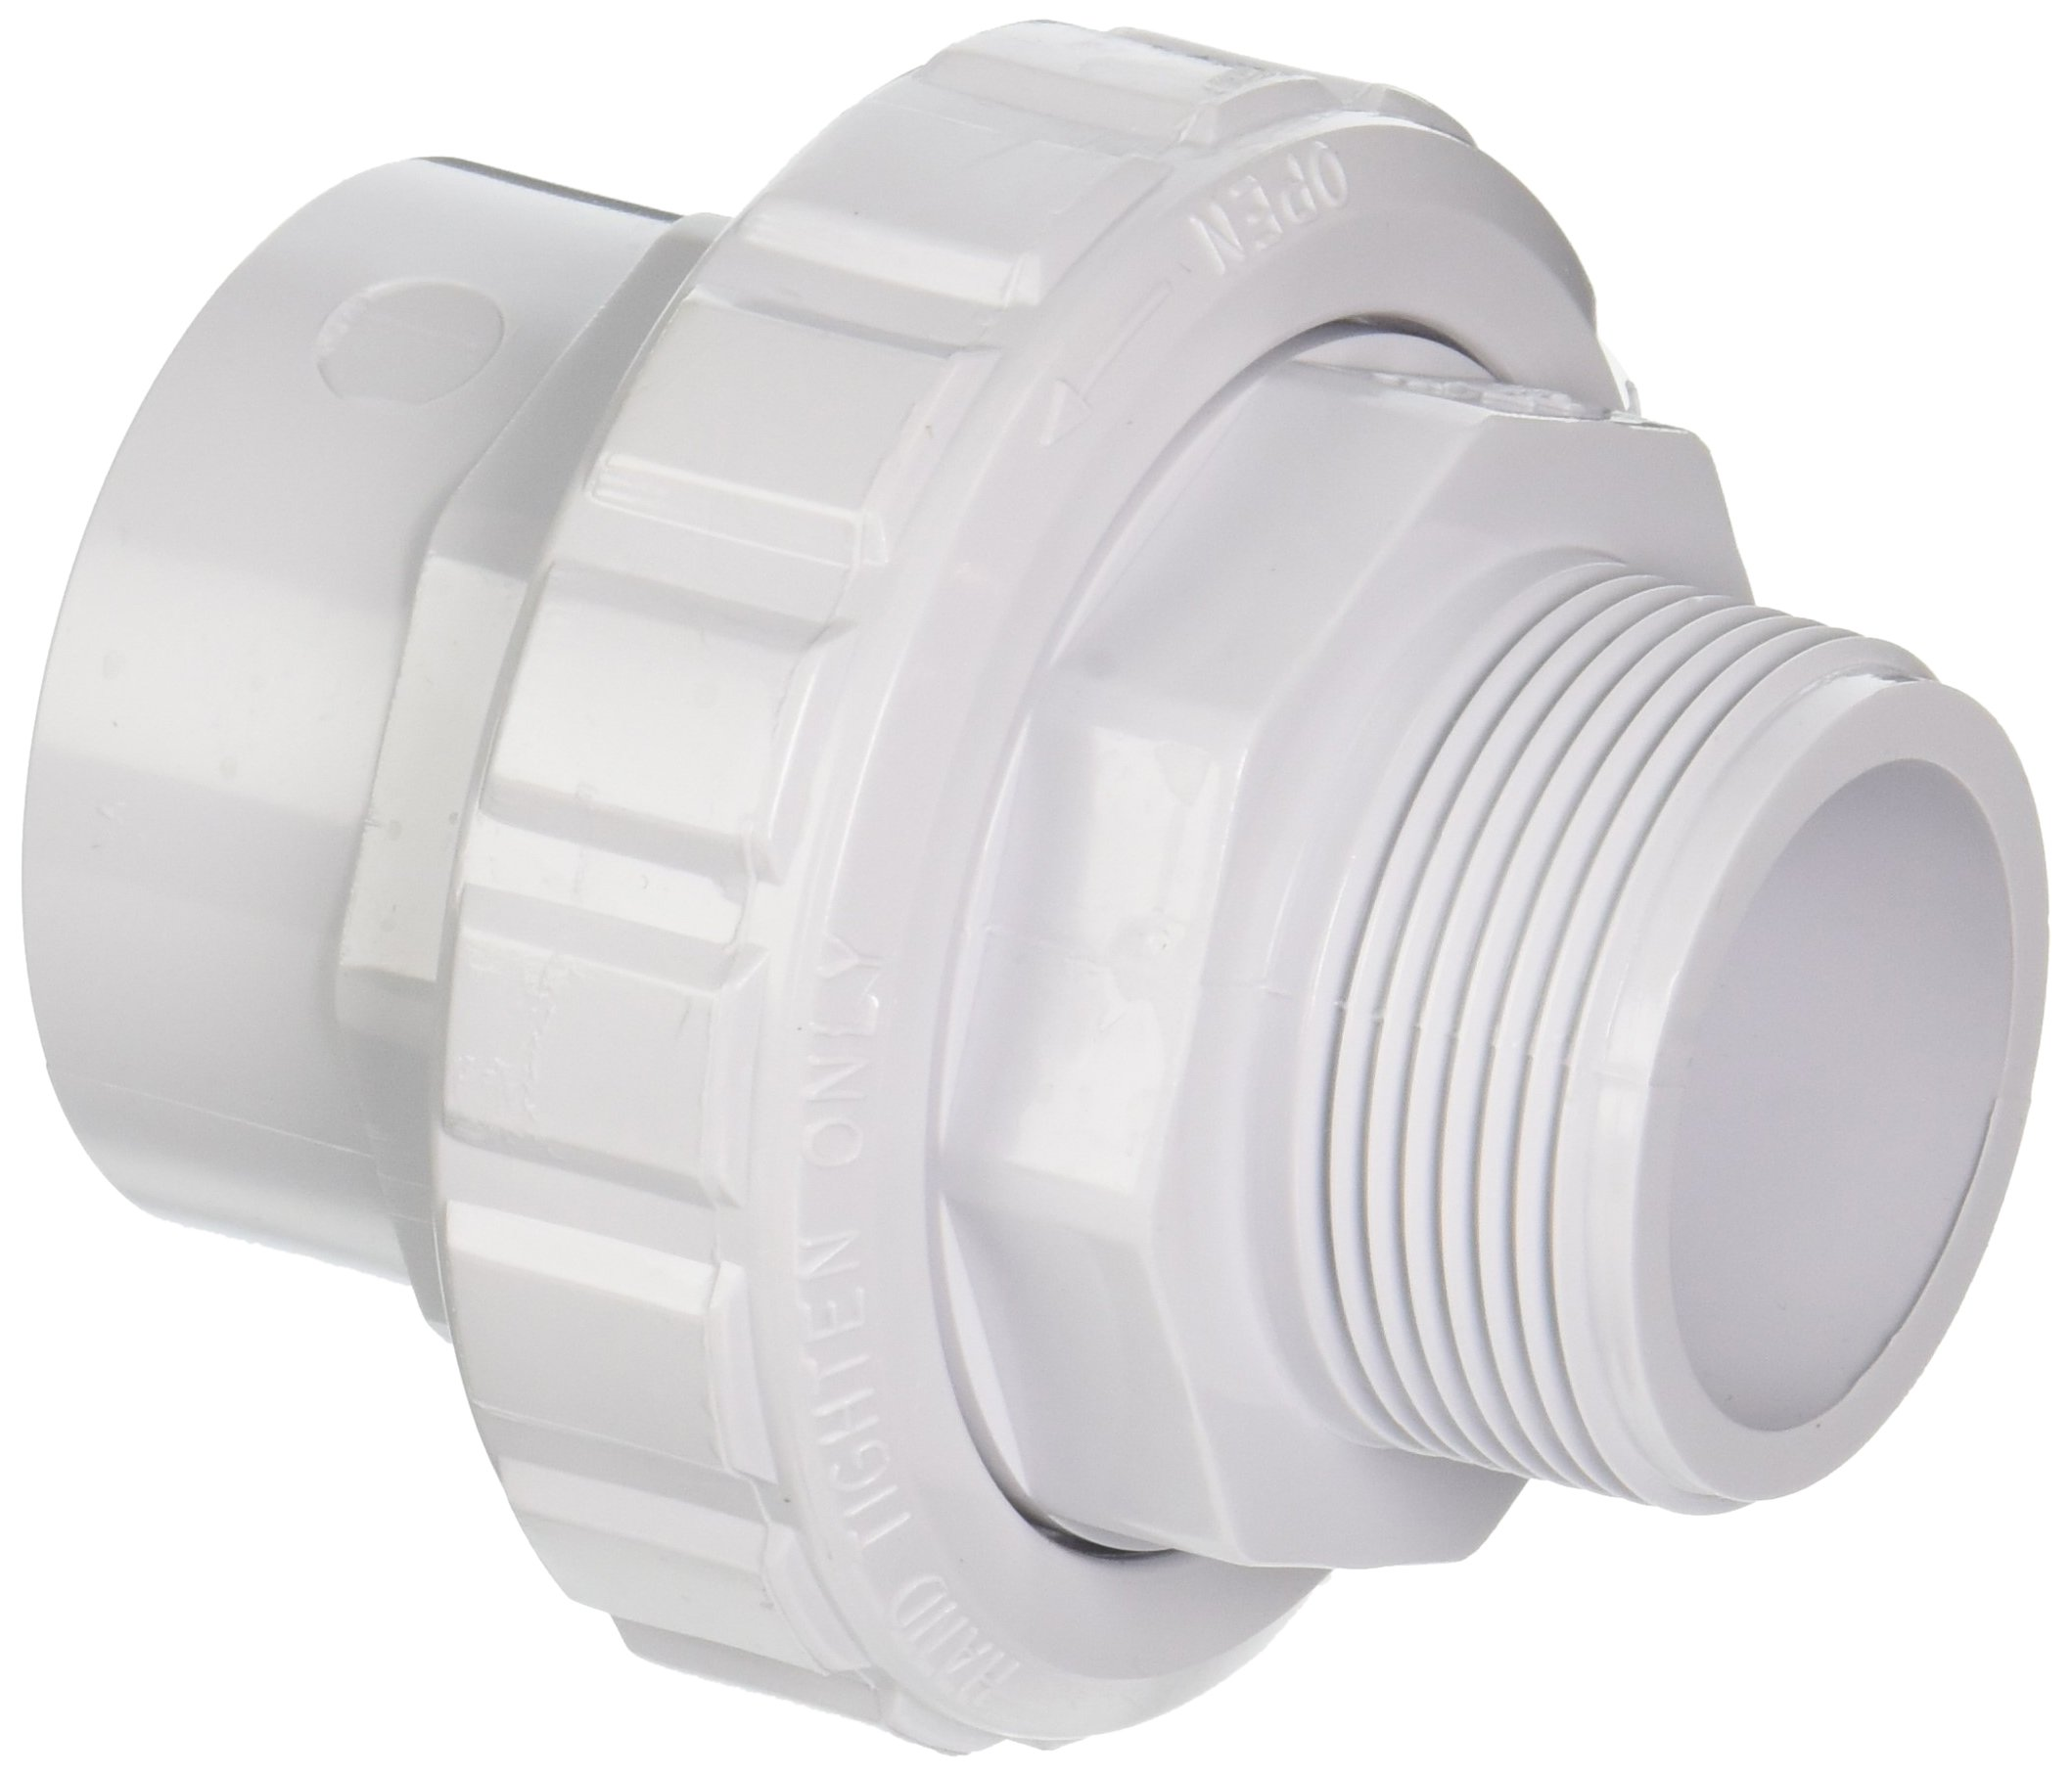 Hayward SP14953S 1-1/2-Inch MIP by 1-1/2-Inch Socket White ABS Flush Male/Female Socket Union by Hayward (Image #1)